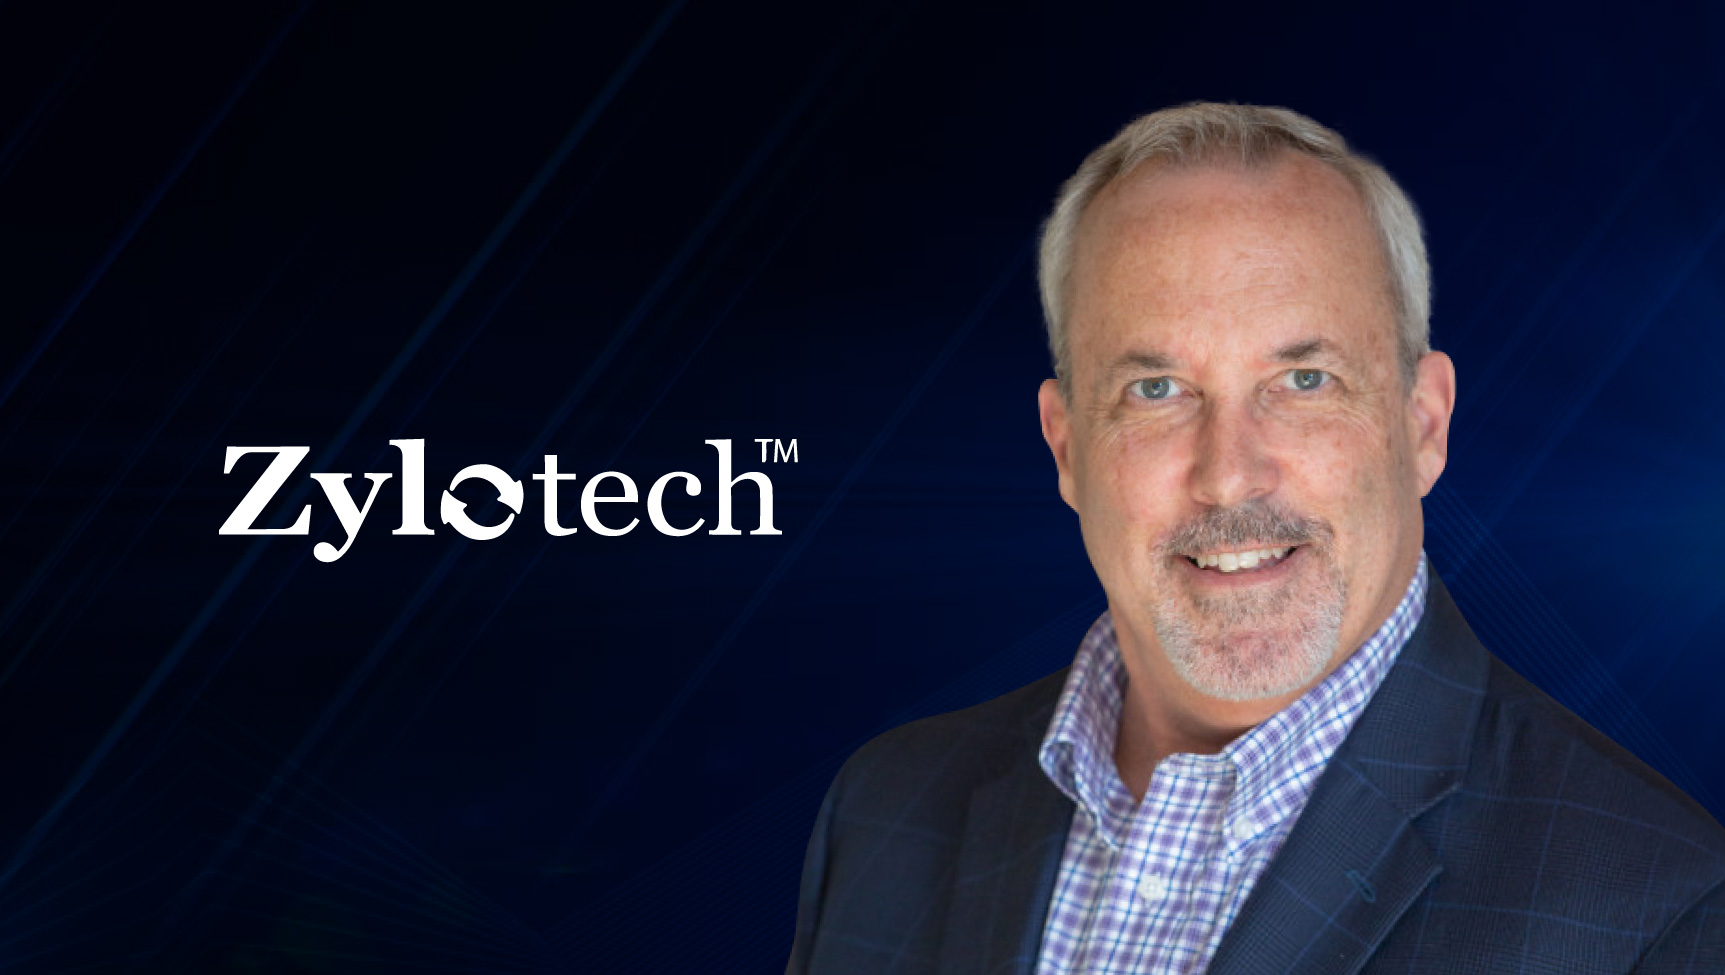 SalesTech Star Interview with Patrick O'Brien, CRO at Zylotech